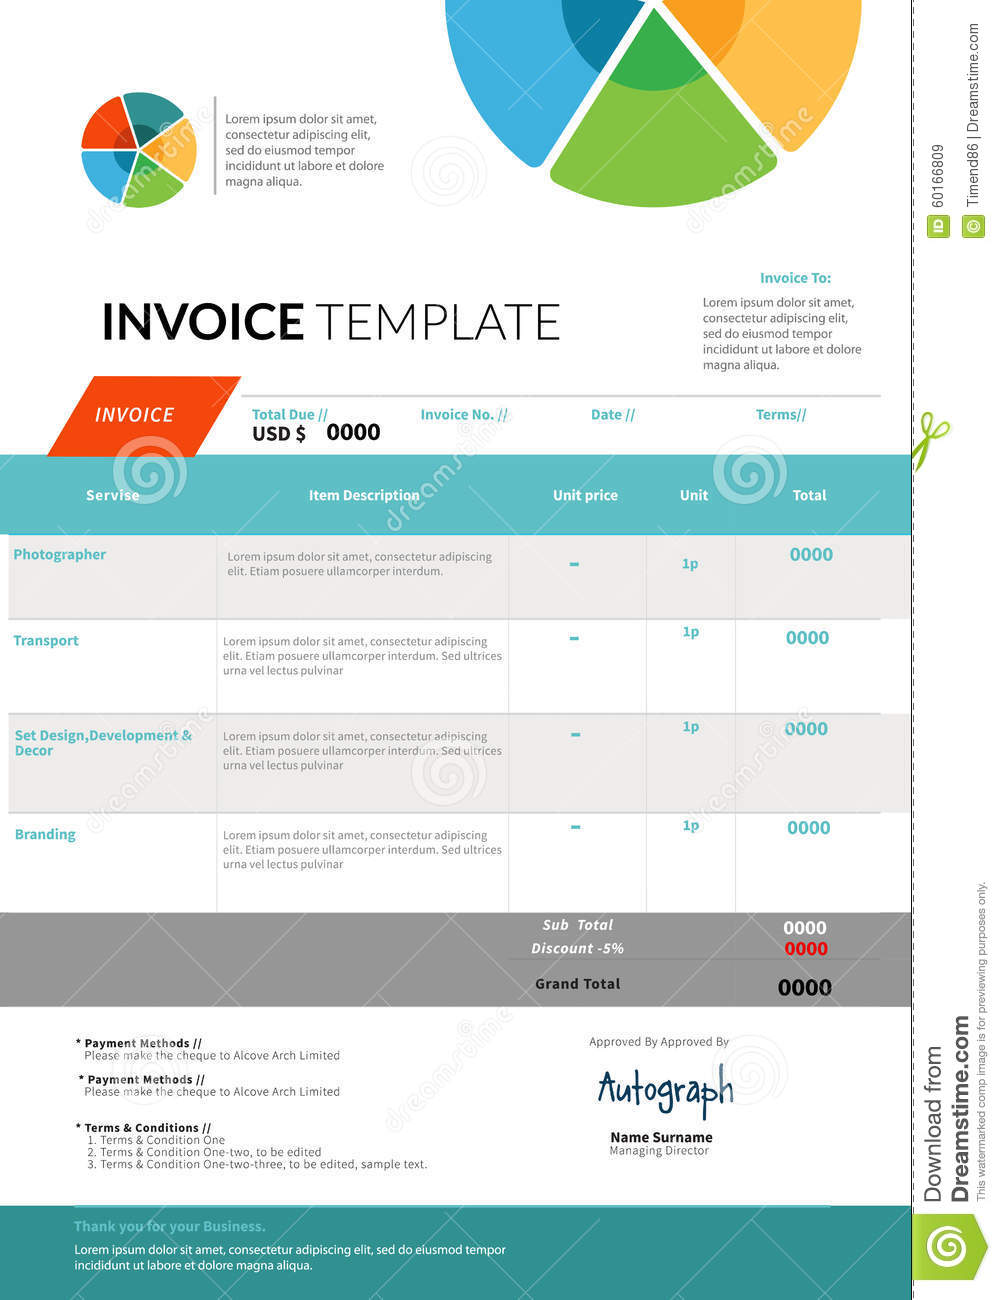 Invoice Template Design Stock Vector Illustration Of Editable - Invoice template design